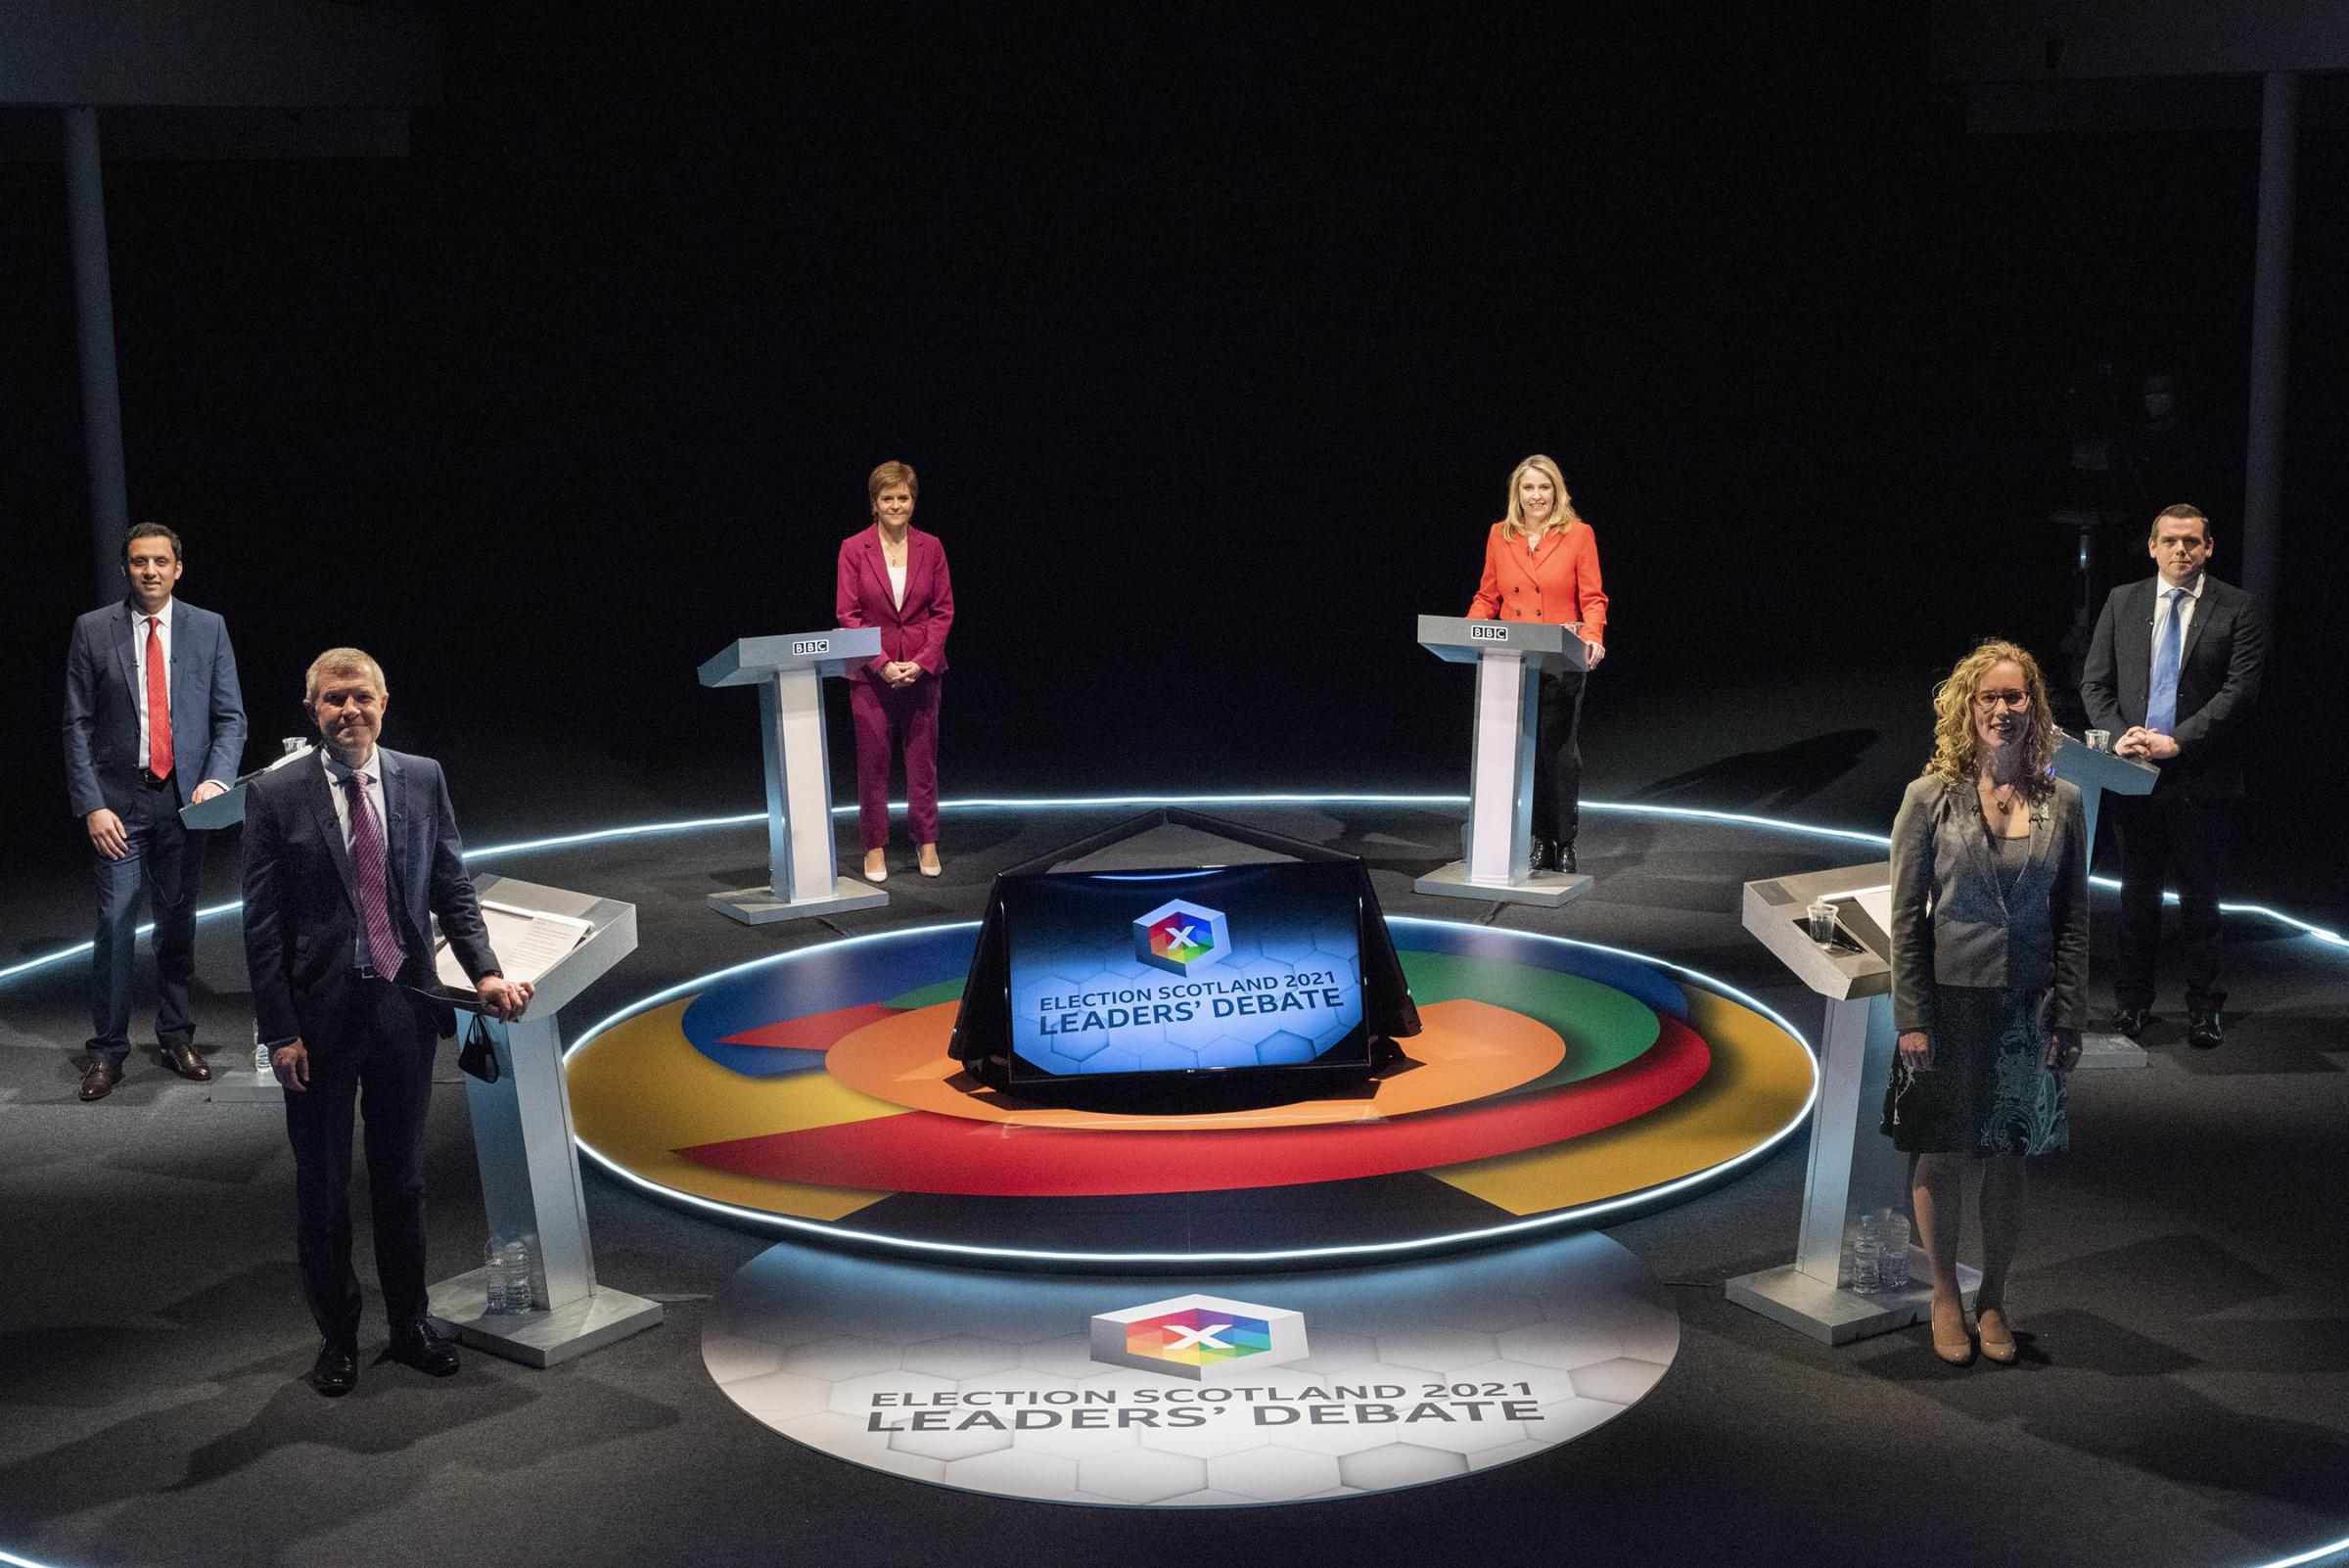 BBC hit by flood of complaints over anti-indy bias in Leaders' Debate